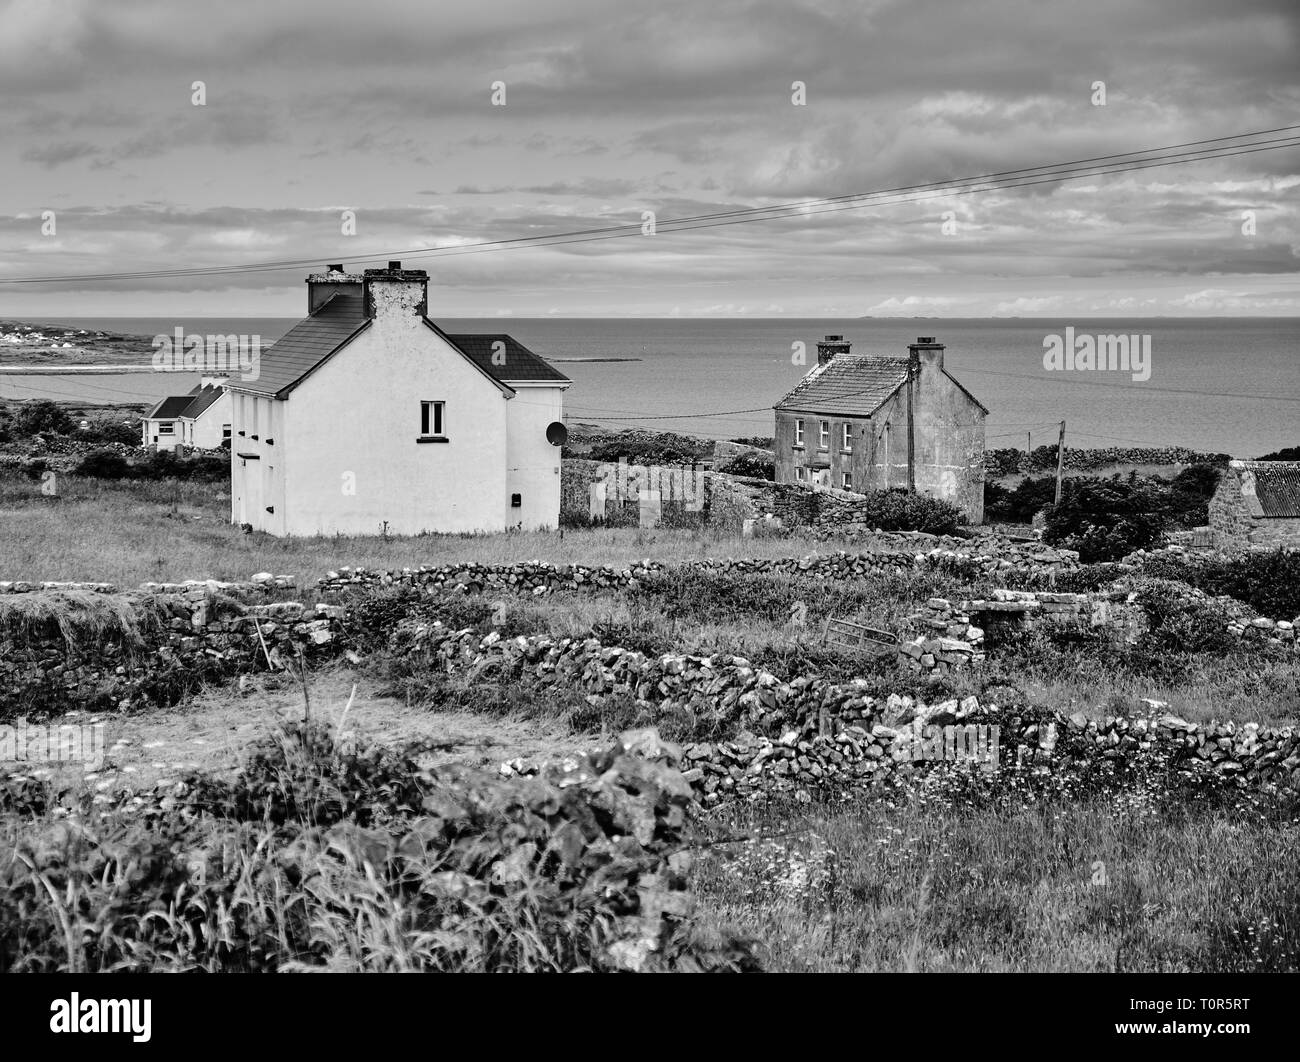 Irish country side scenery, with rock fences, little houses and ocean in background. Black and white - Stock Image